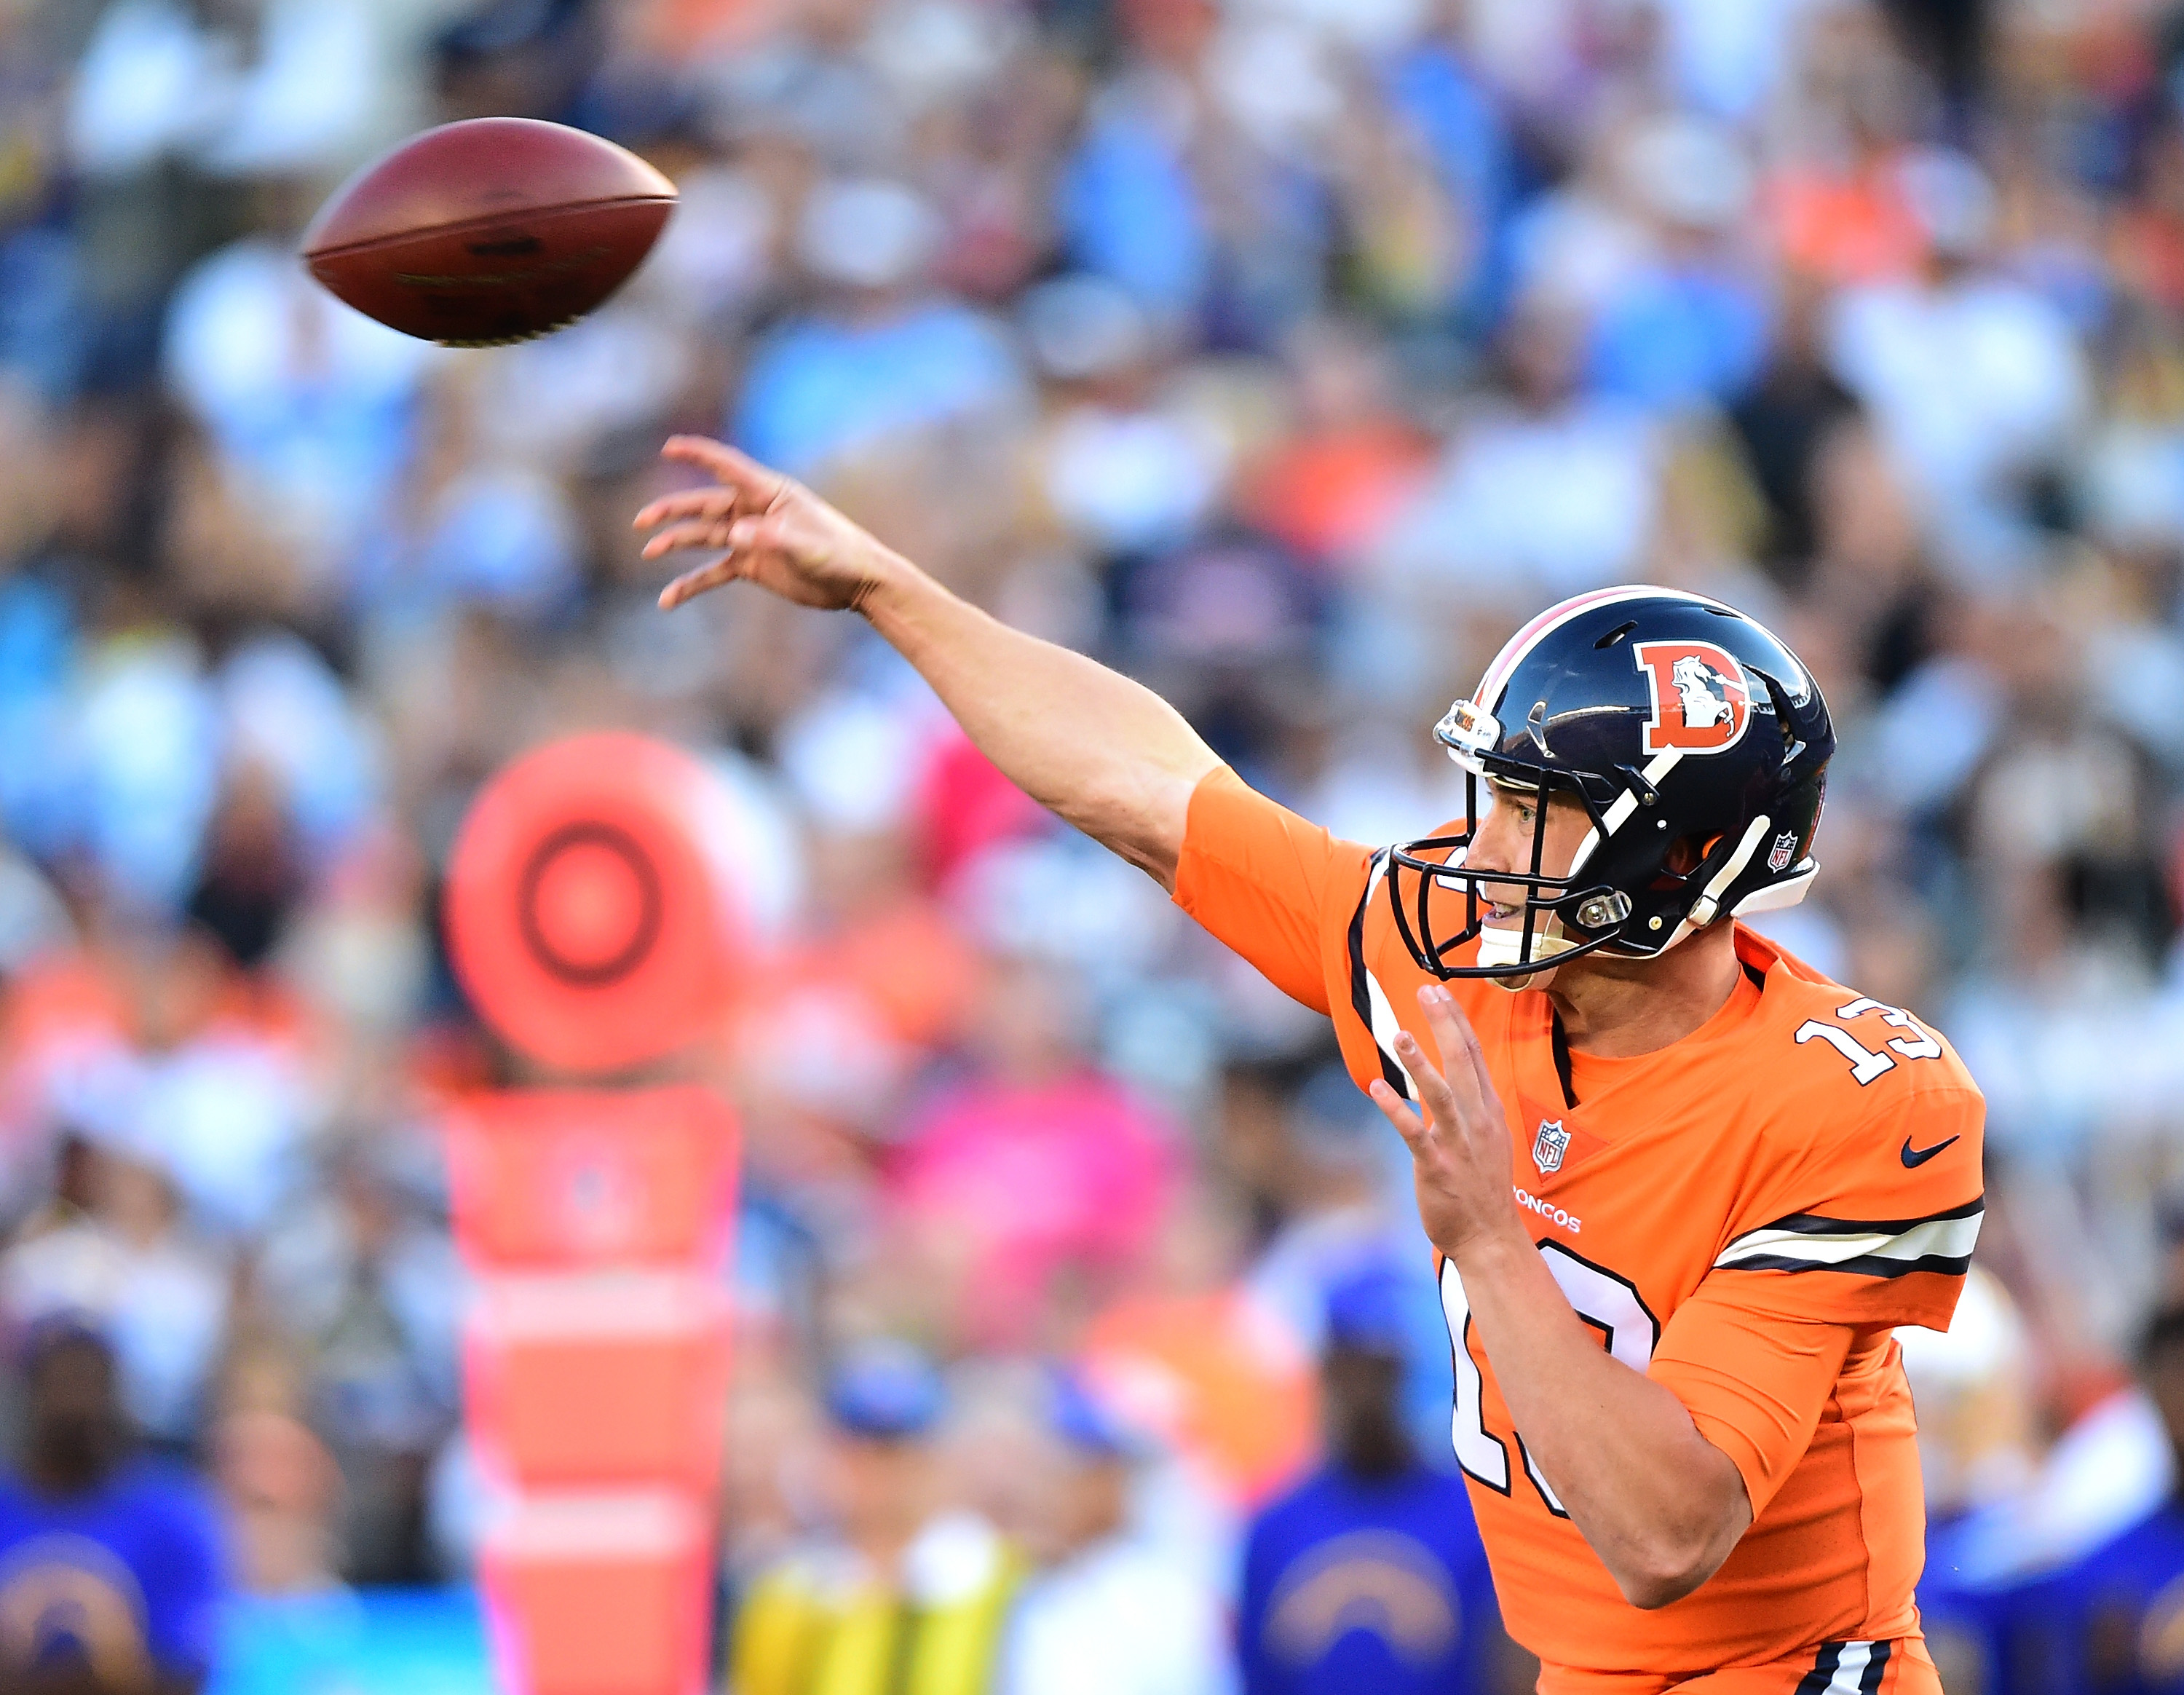 Trevor Siemian #13 of the Denver Broncos passes in the pocket during the first quarter against the San Diego Chargers at Qualcomm Stadium on October 13, 2016 in San Diego, California. (Photo by Harry How/Getty Images)